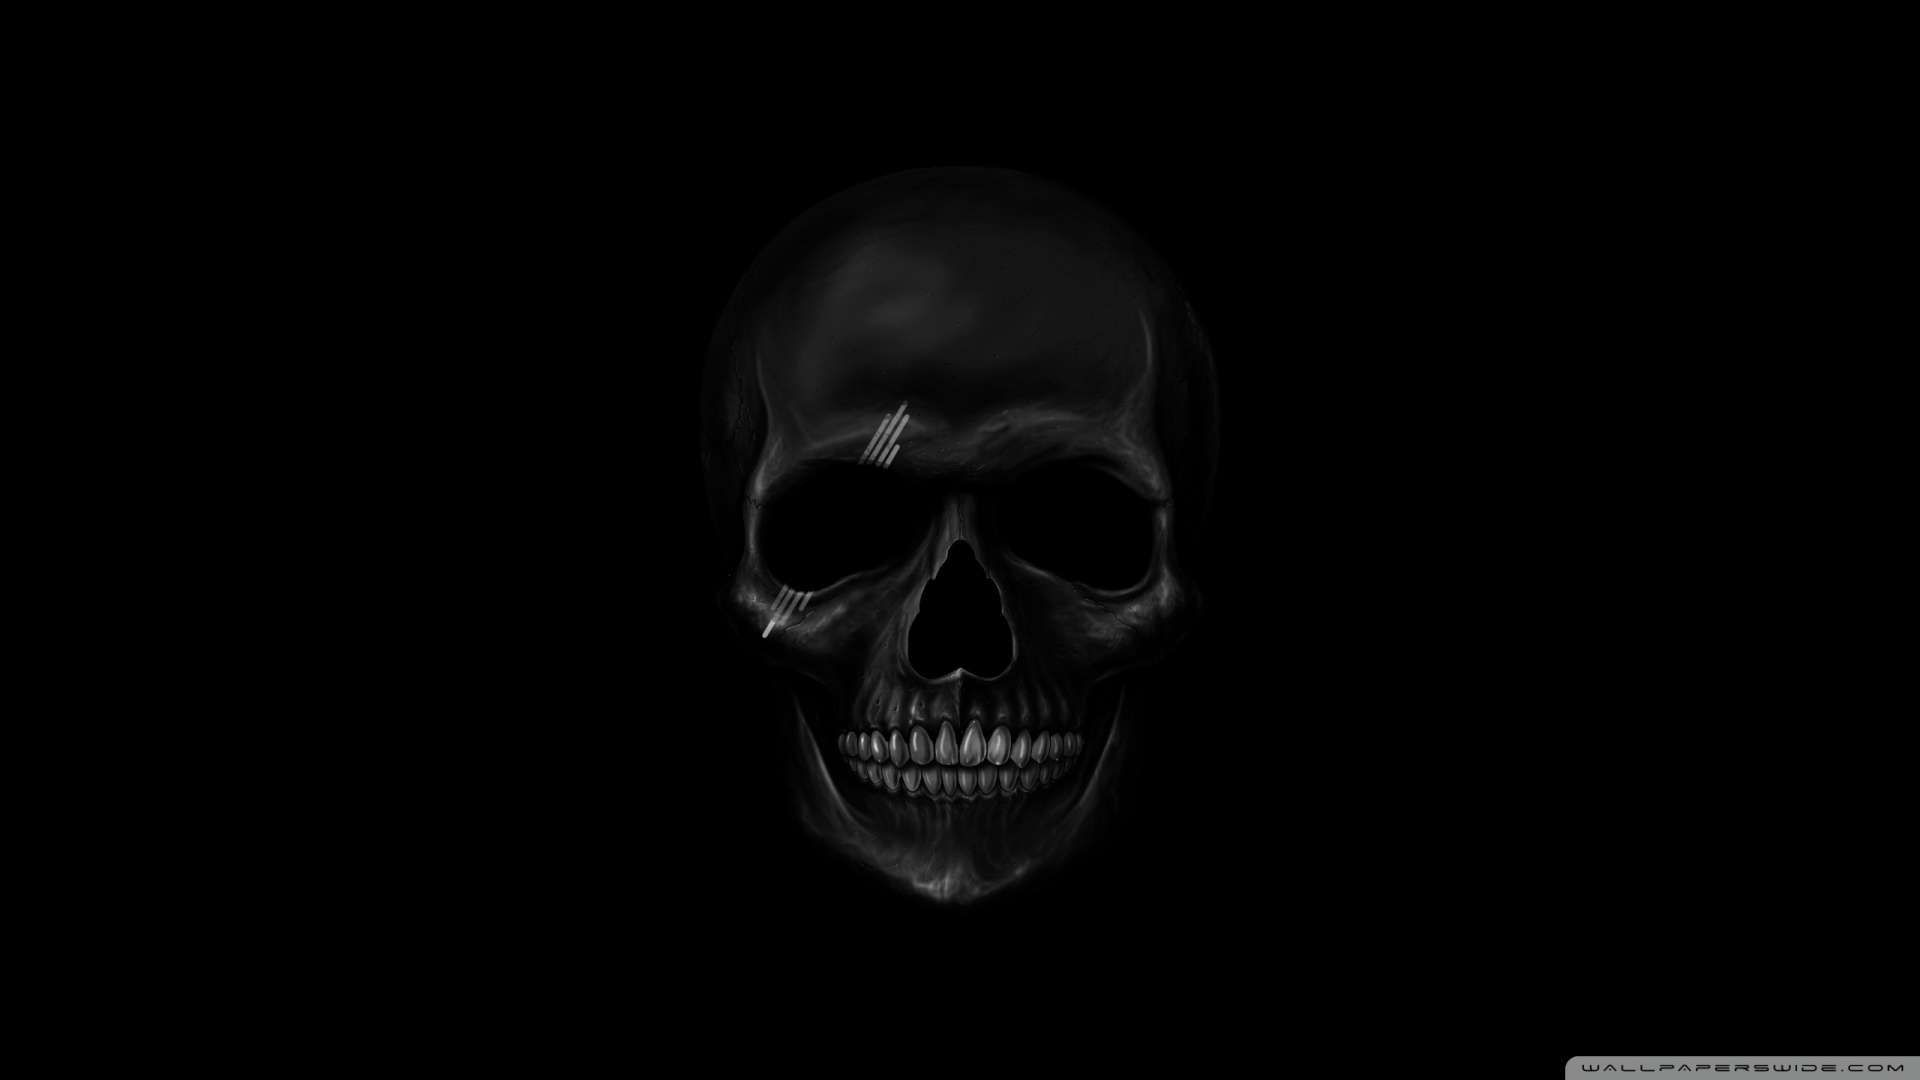 Dark Hd Wallpapers Collection For Free Download Hd Wallpapers In